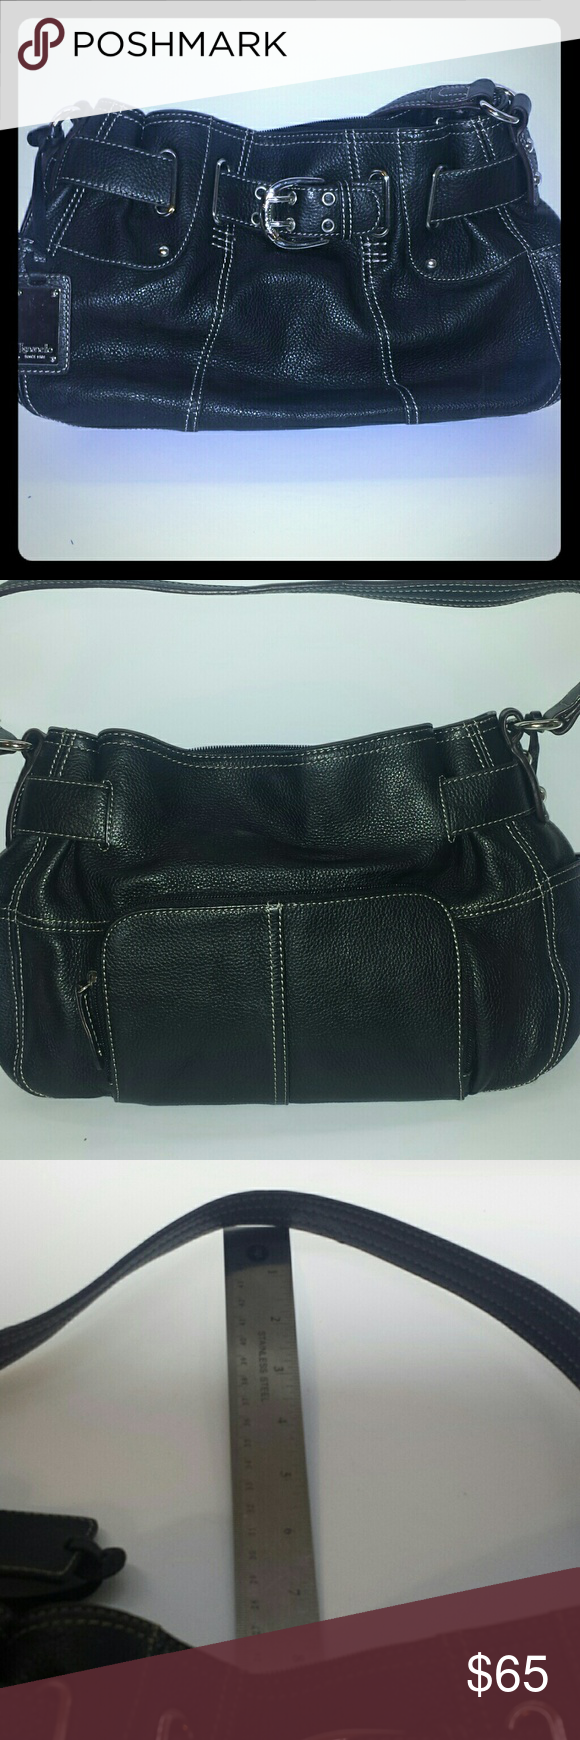 Tignanello Handbag Very Clean Black Leather Purse Preowned Carried Less Than 10 Times With Chrome Accents External Wallet Style